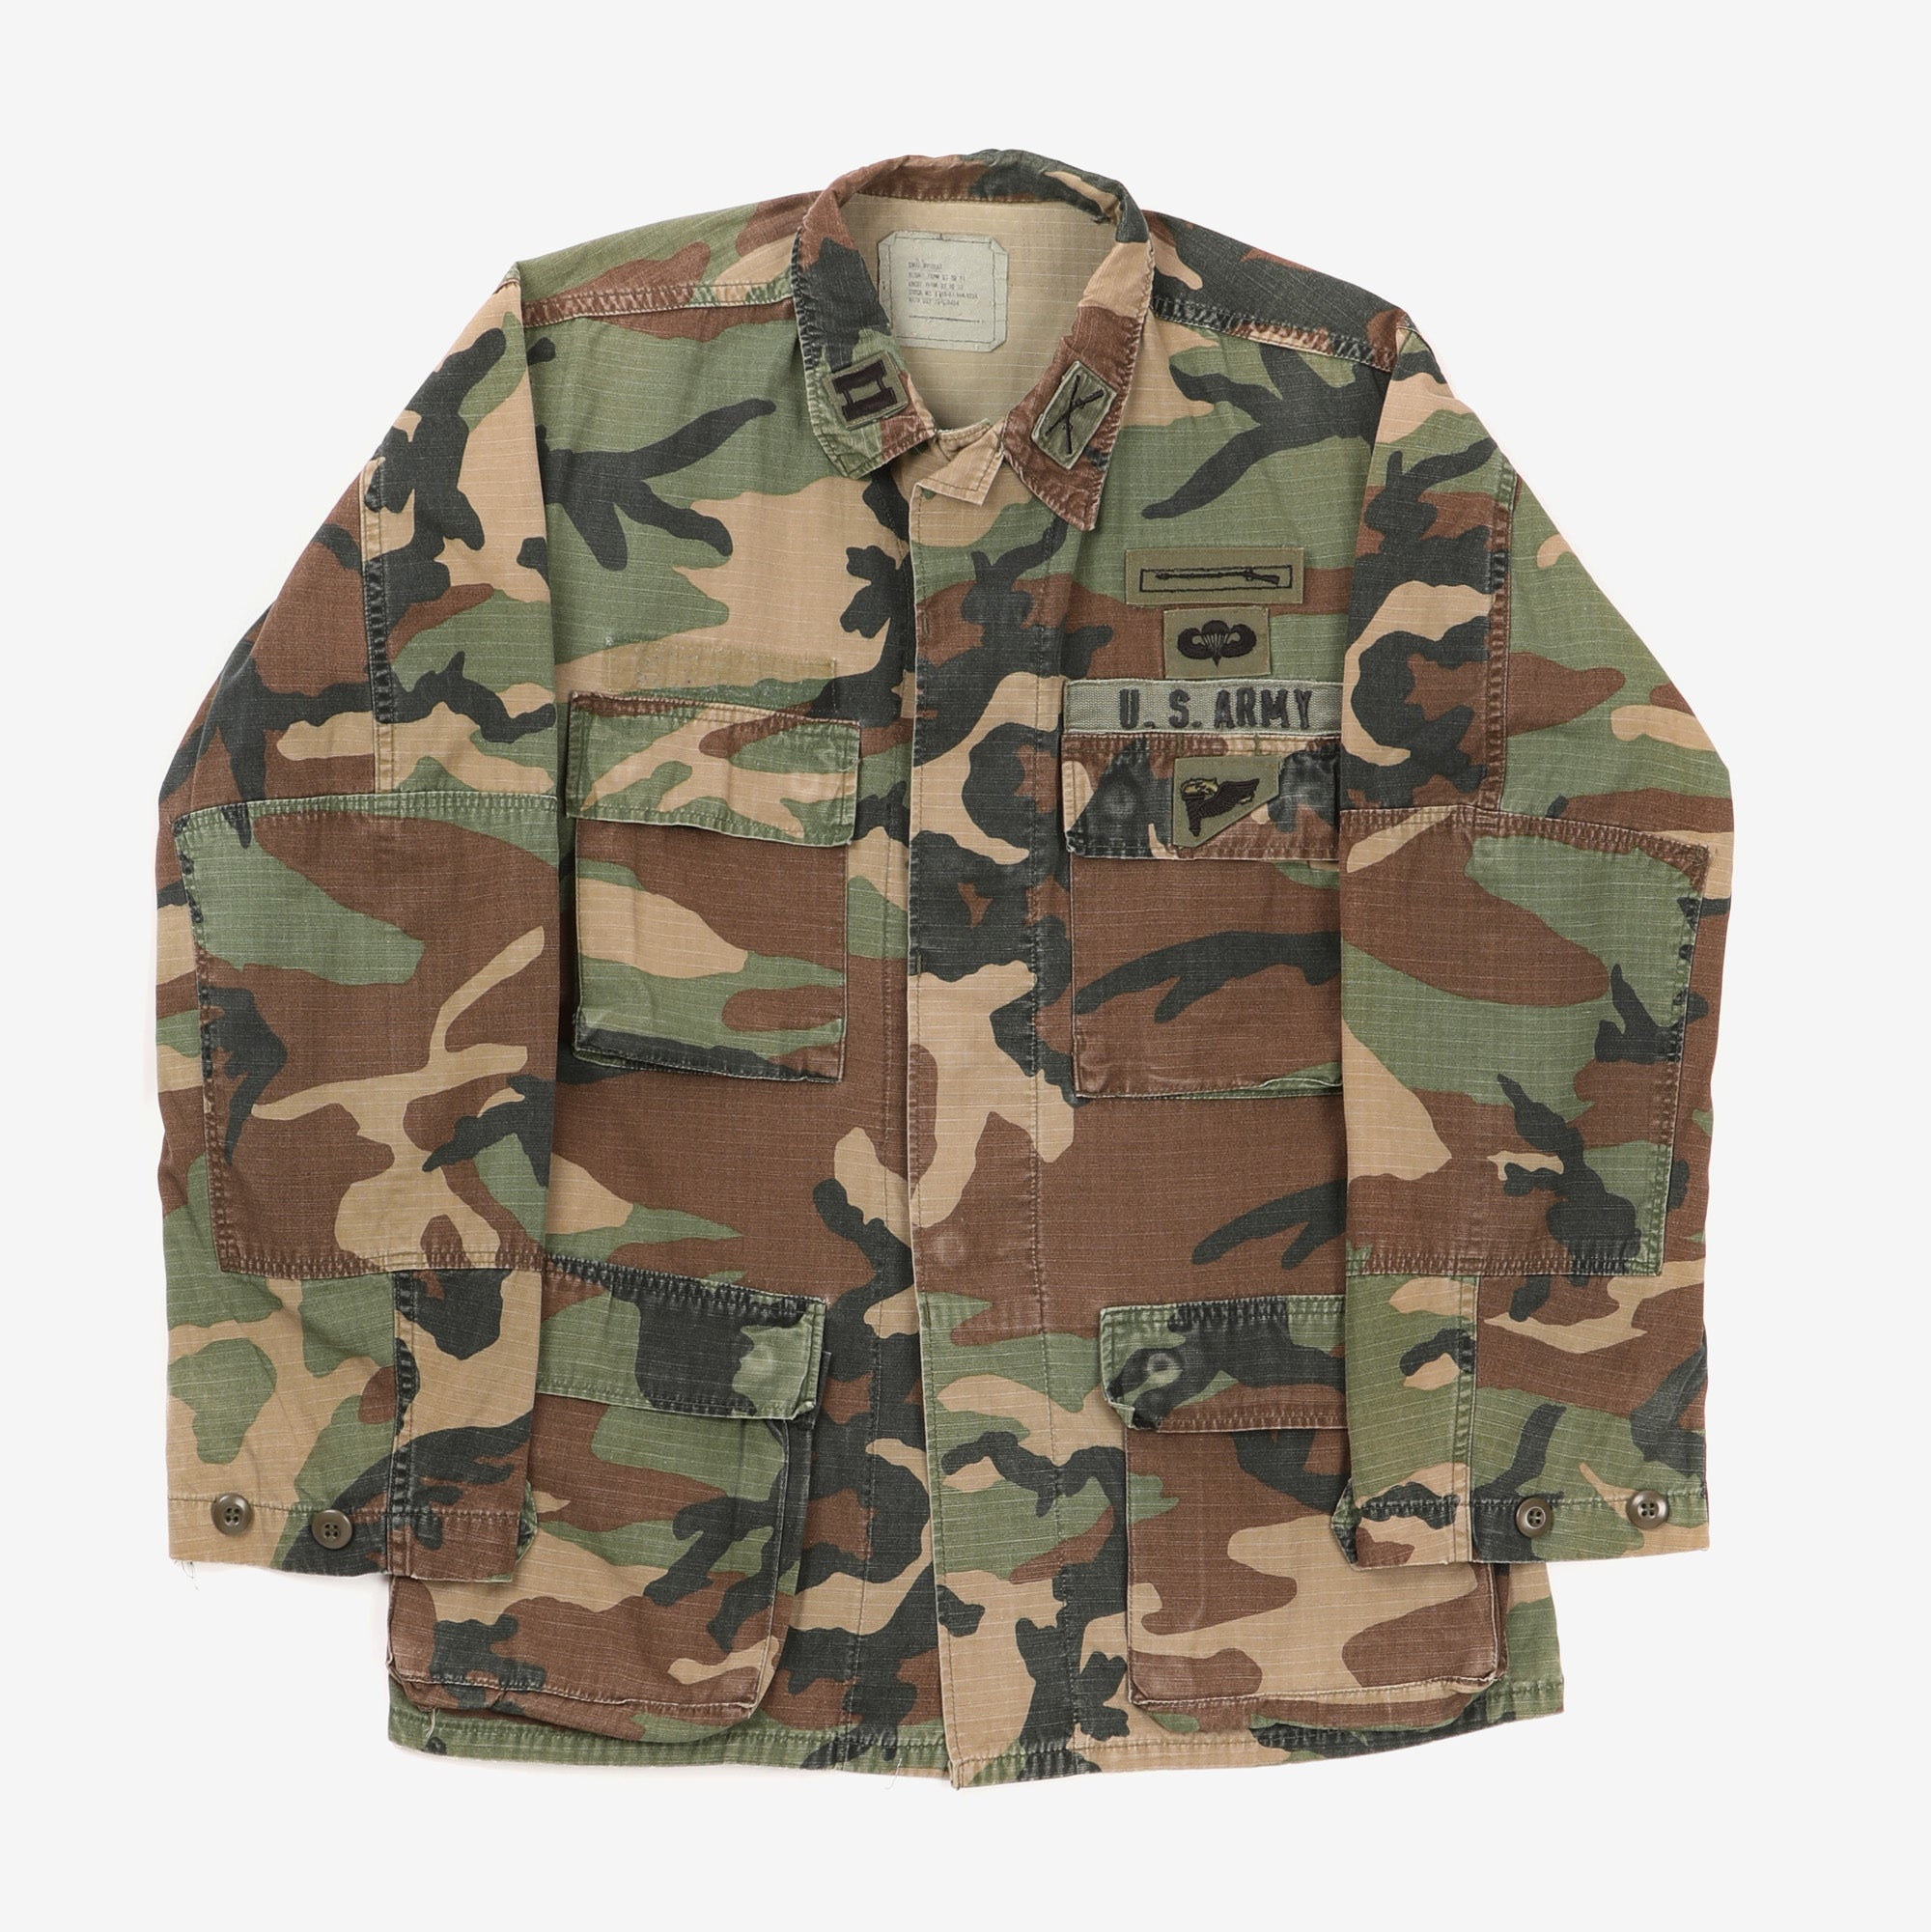 Ripstop Woodland Camo Airborne Jacket